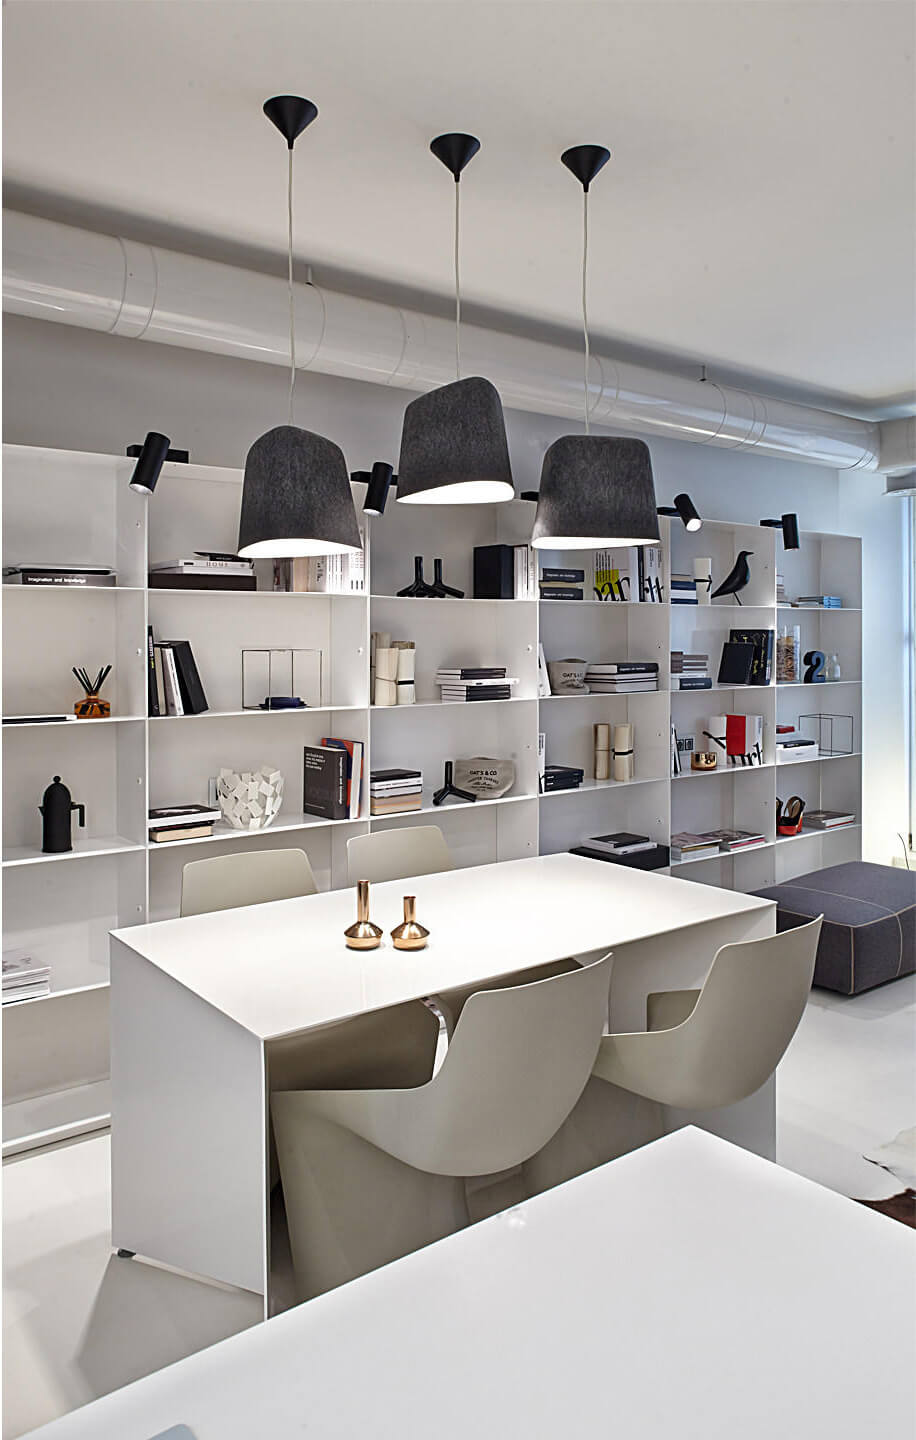 White wall with shelves